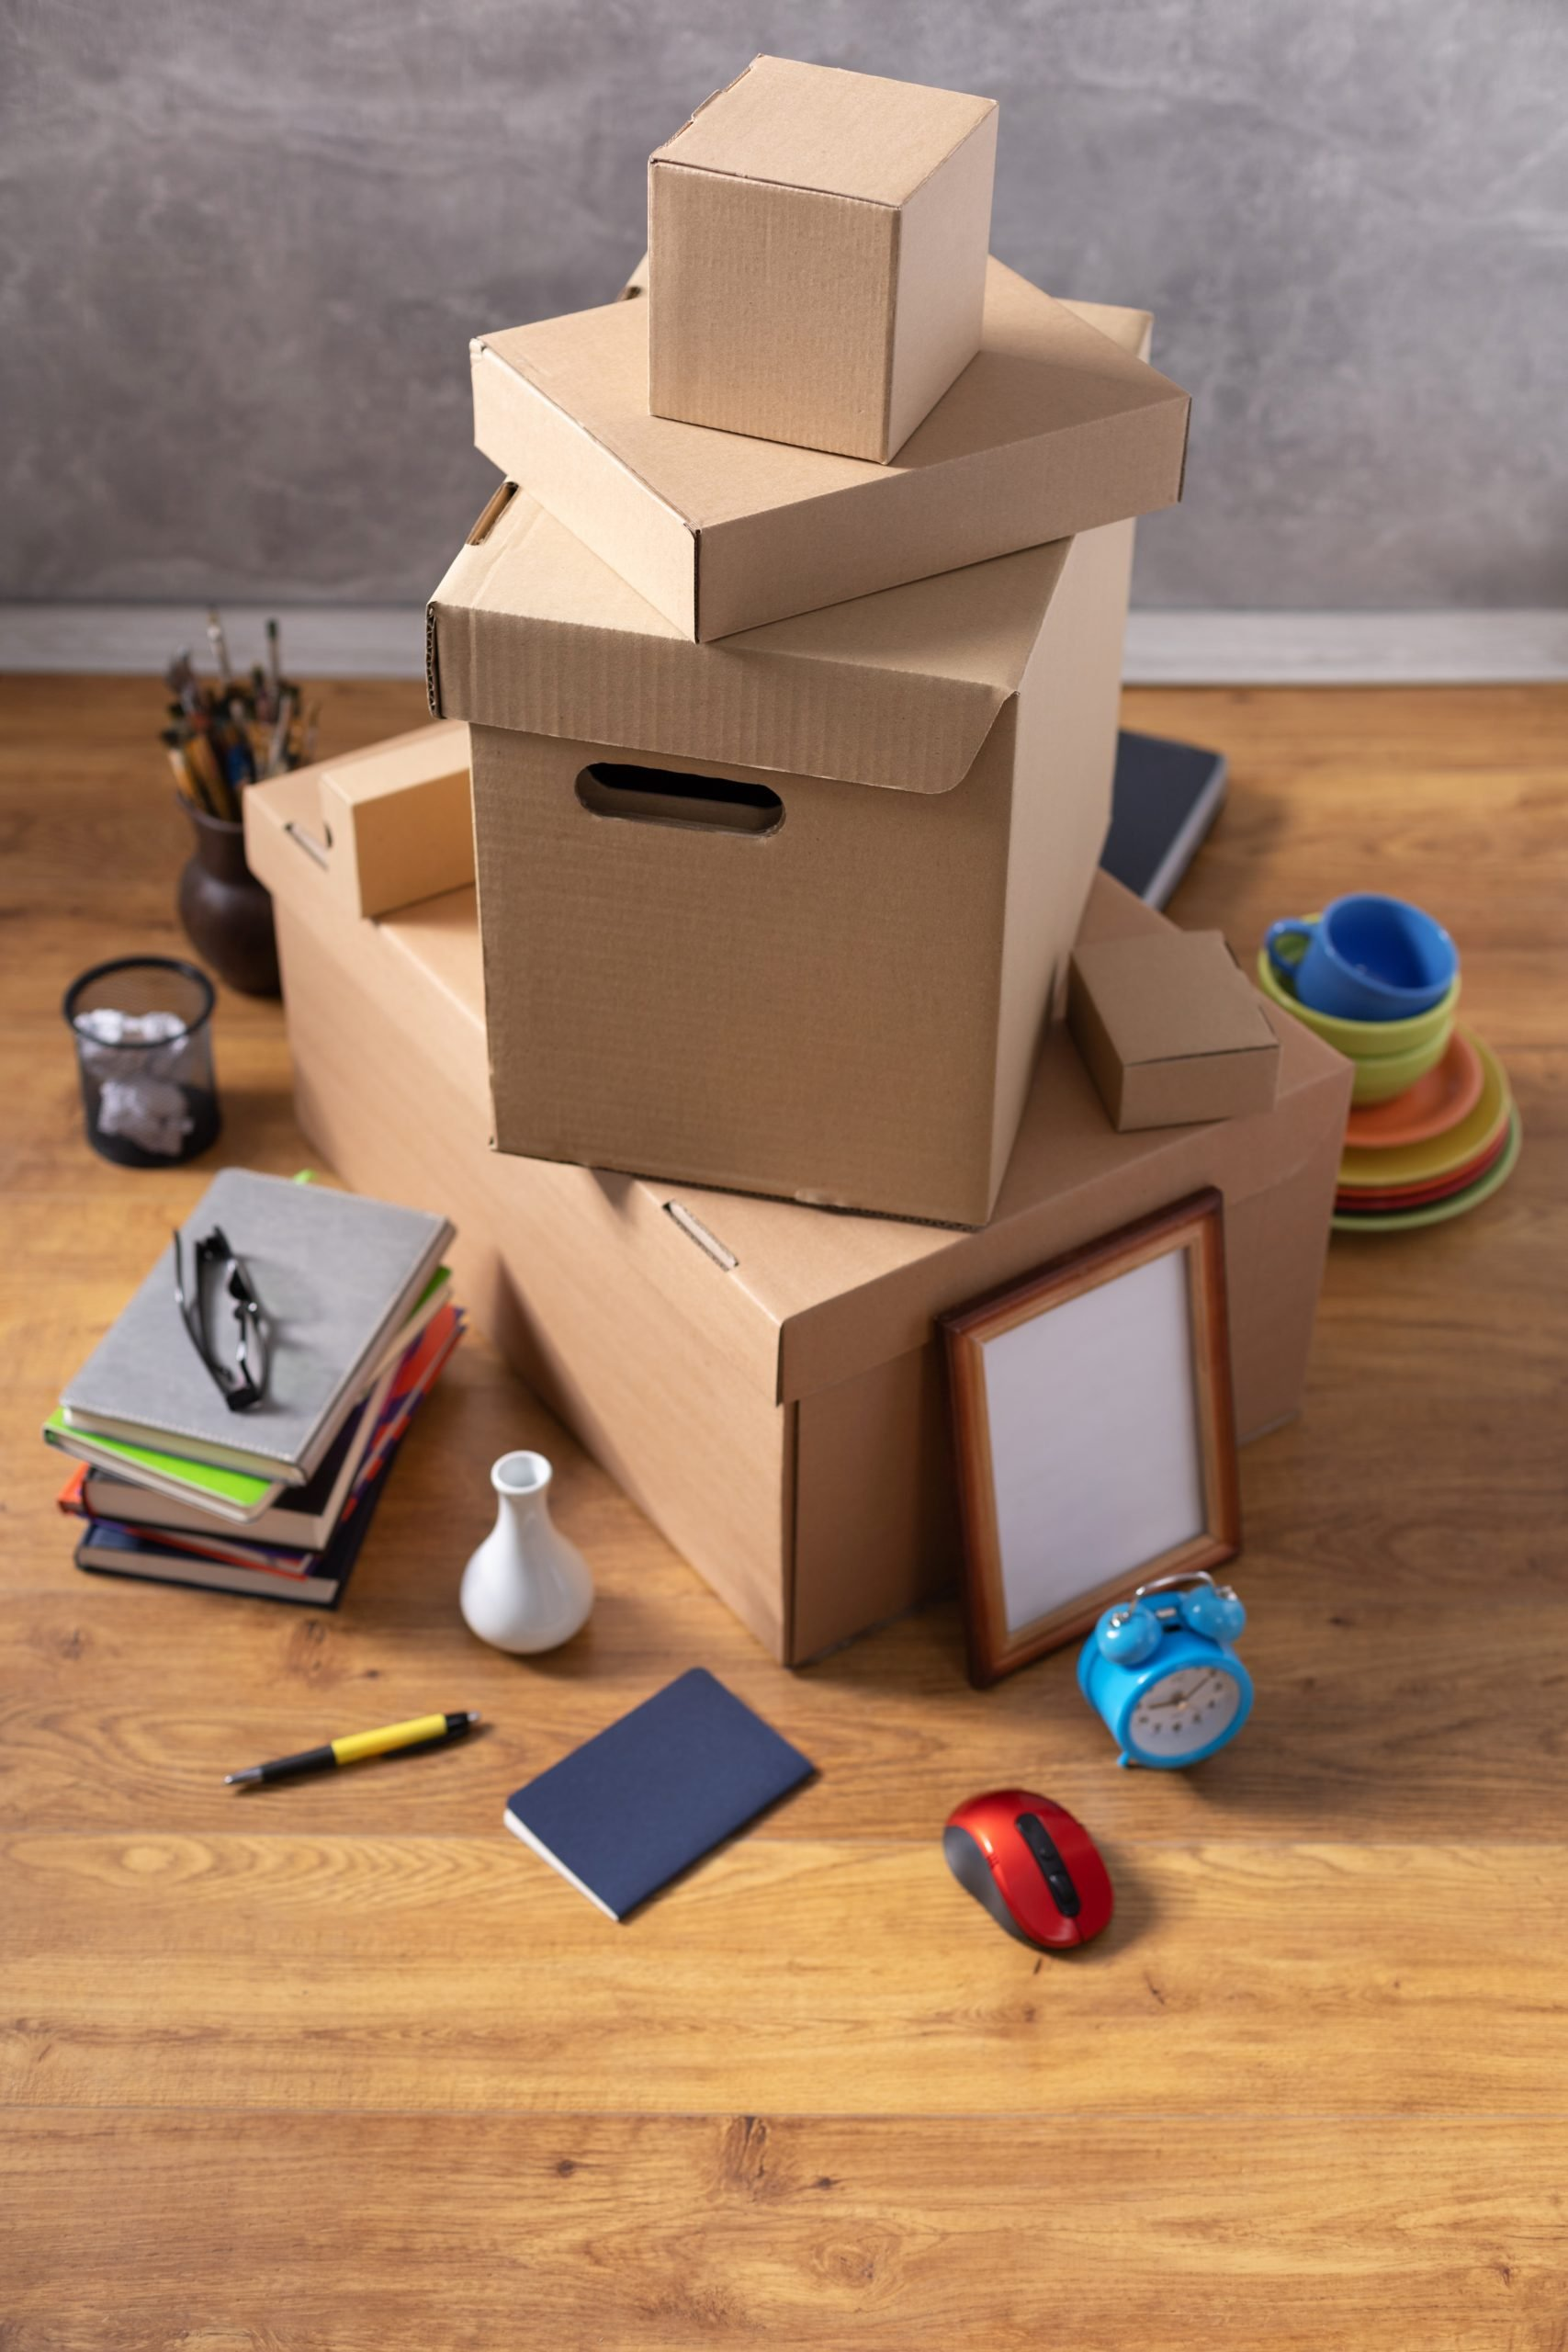 collection of cardboard boxes for a student who is moving